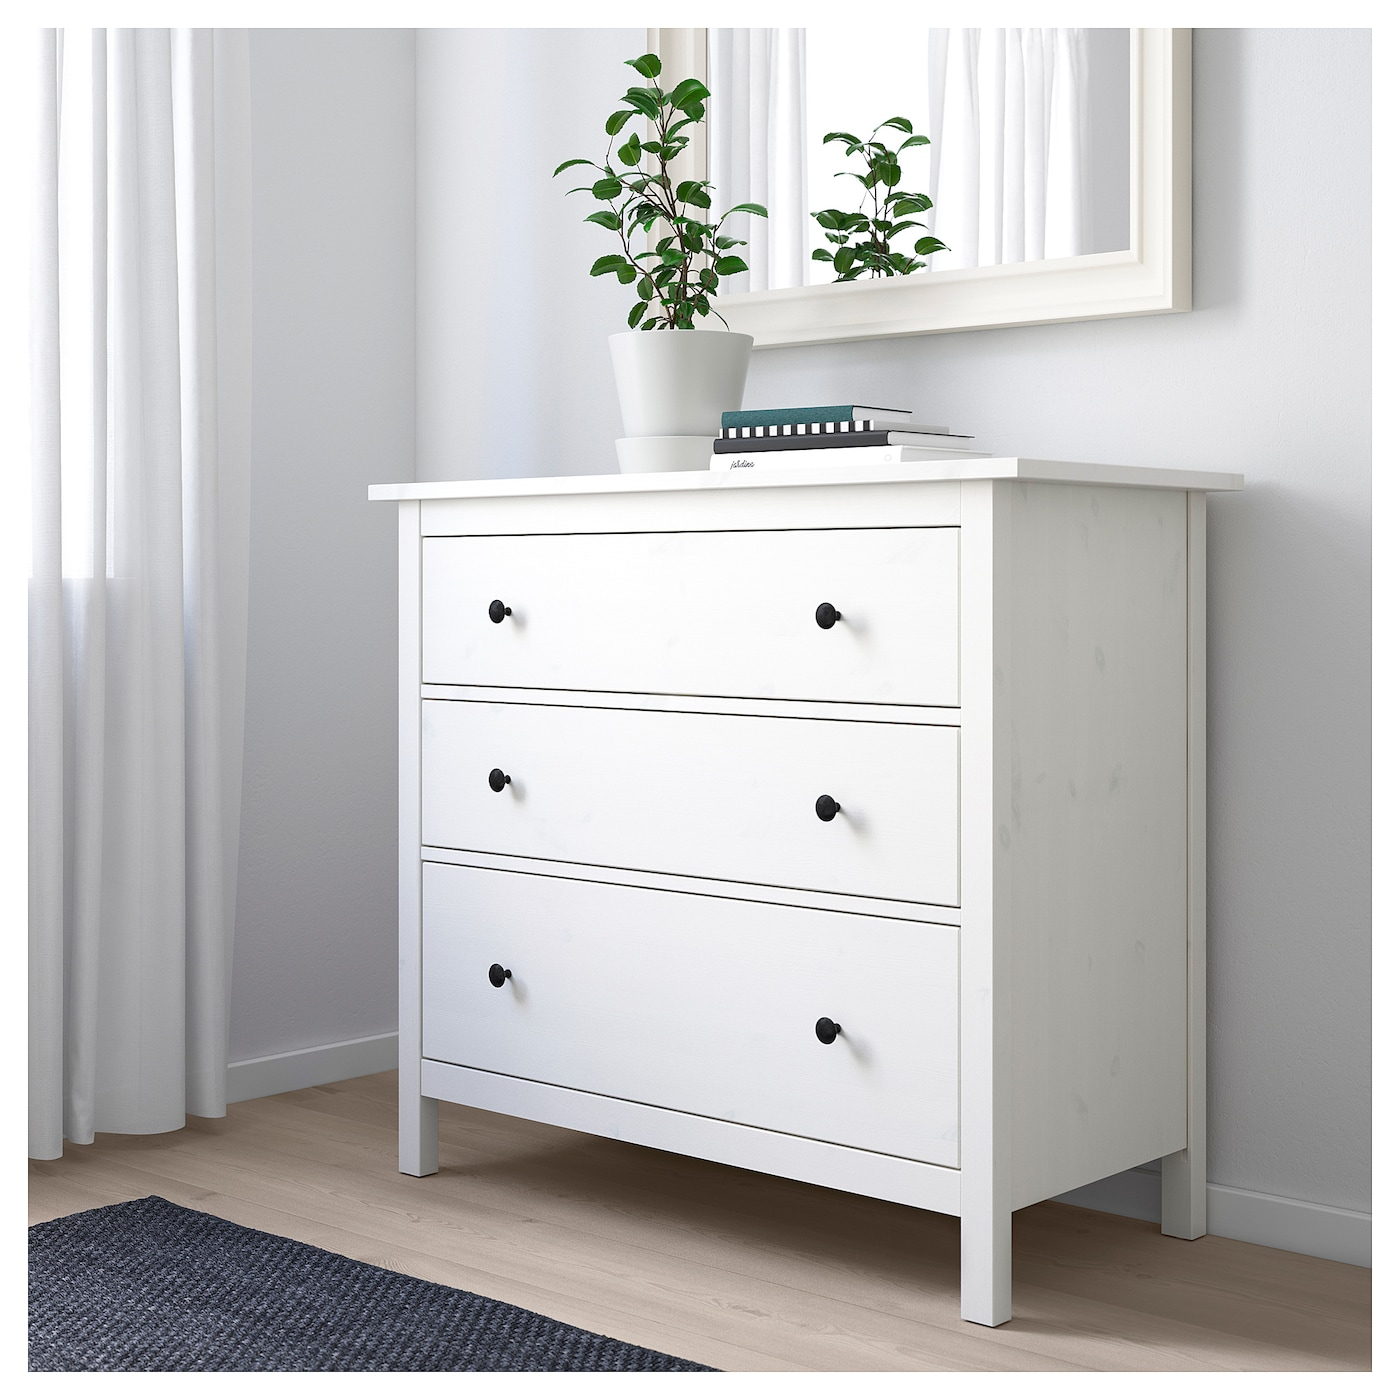 hemnes chest of 3 drawers white stain 108 x 96 cm ikea. Black Bedroom Furniture Sets. Home Design Ideas